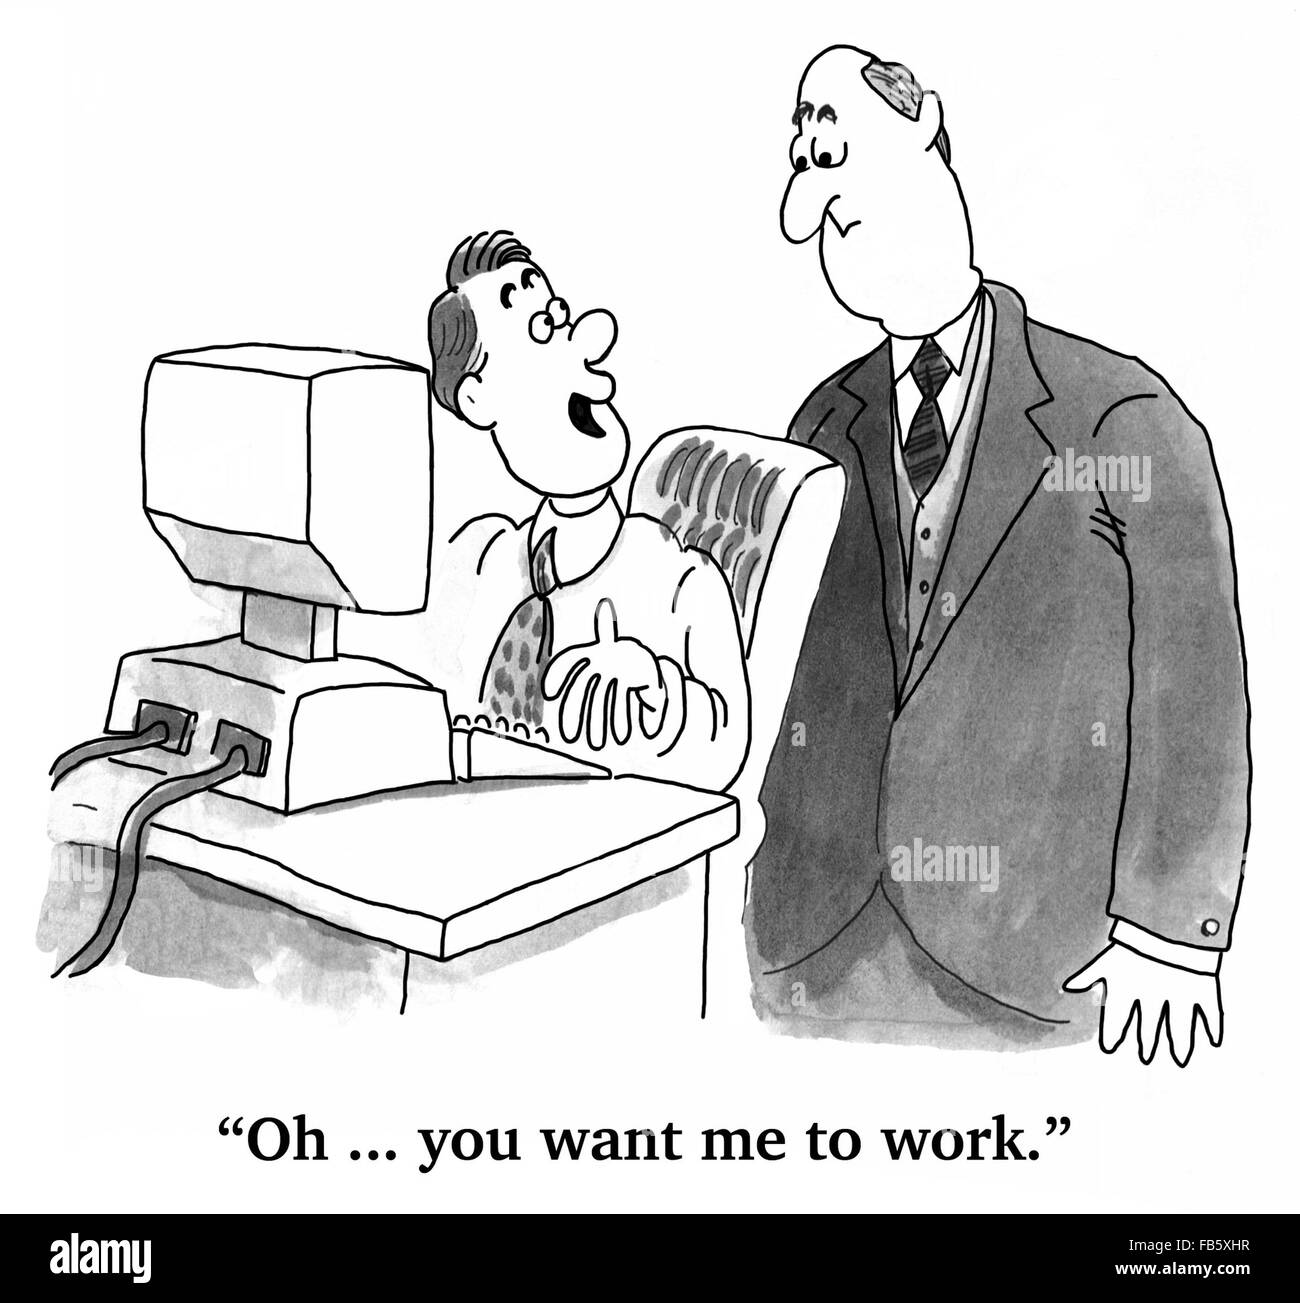 About Productivity business cartoon about productivity. the employee has been